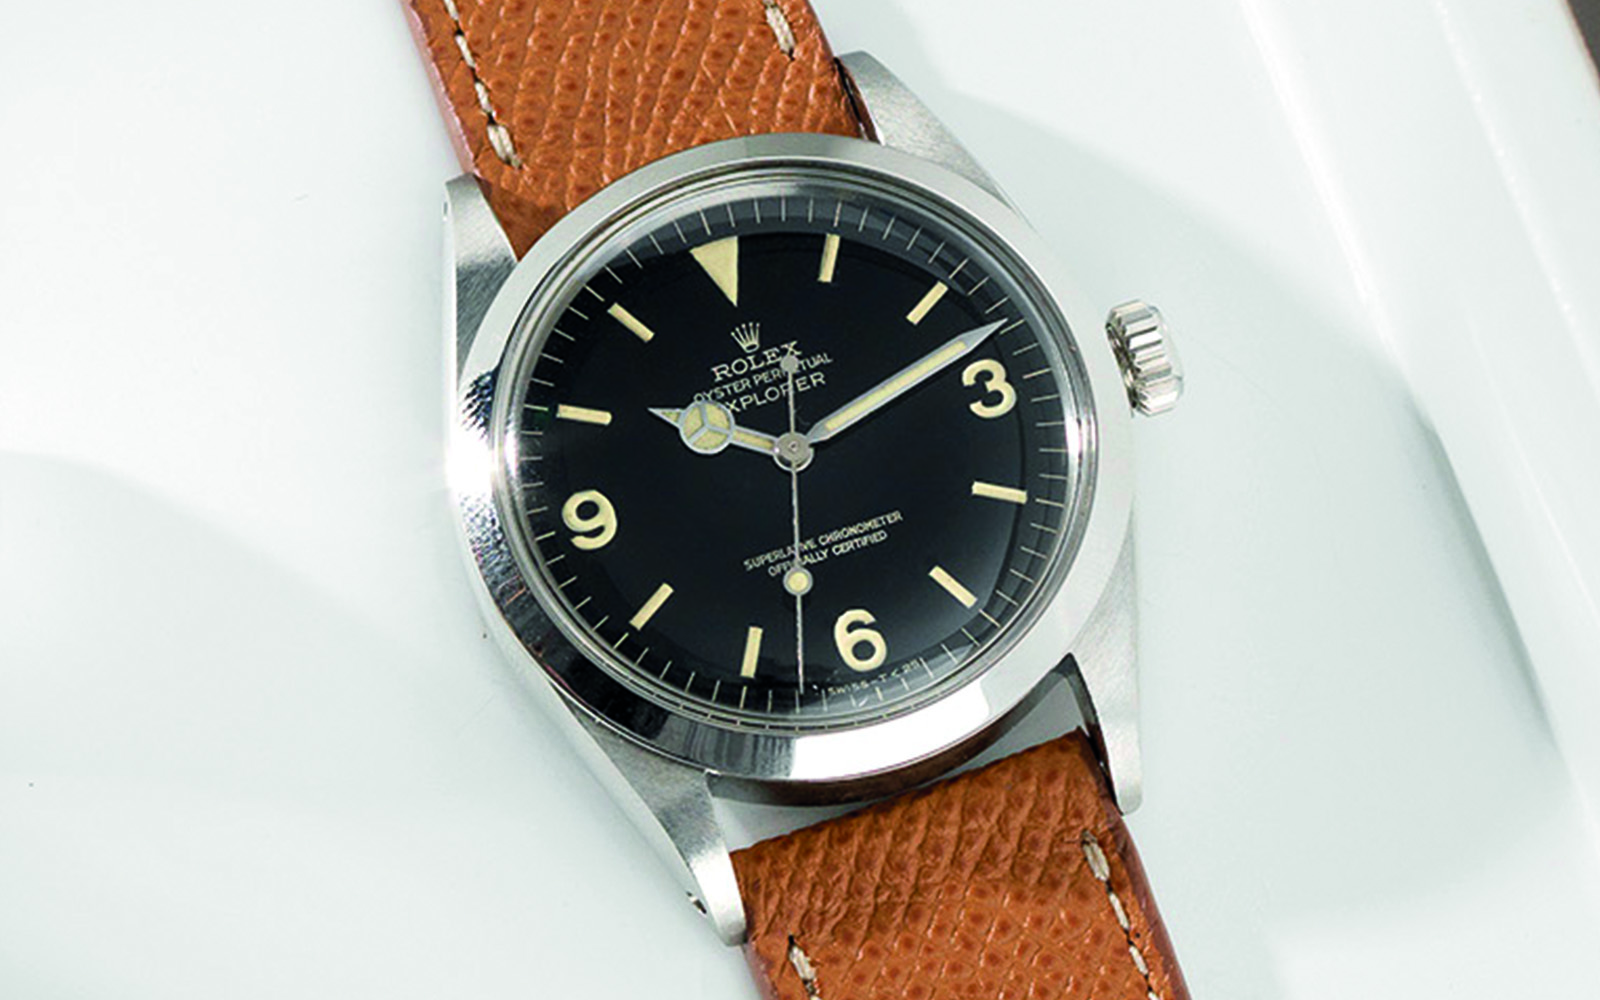 Strap Guide , The Rolex 1016 Explorer , Bulang \u0026 Sons